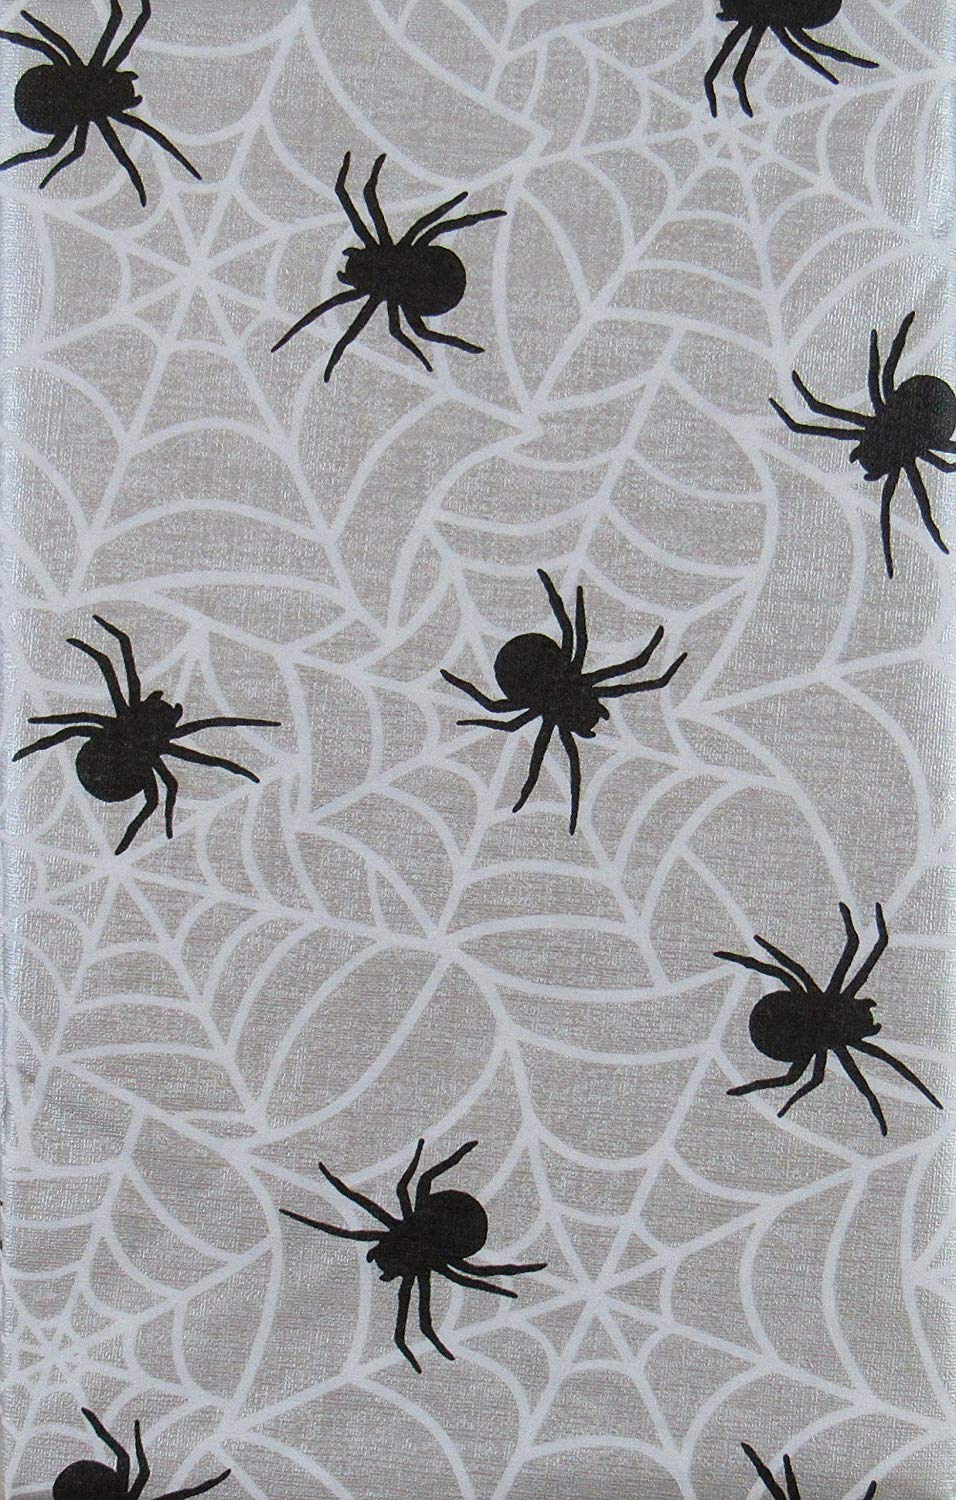 Halloween Spiders on Their Webs Vinyl Flannel Back Tablecloth Round or Oblong